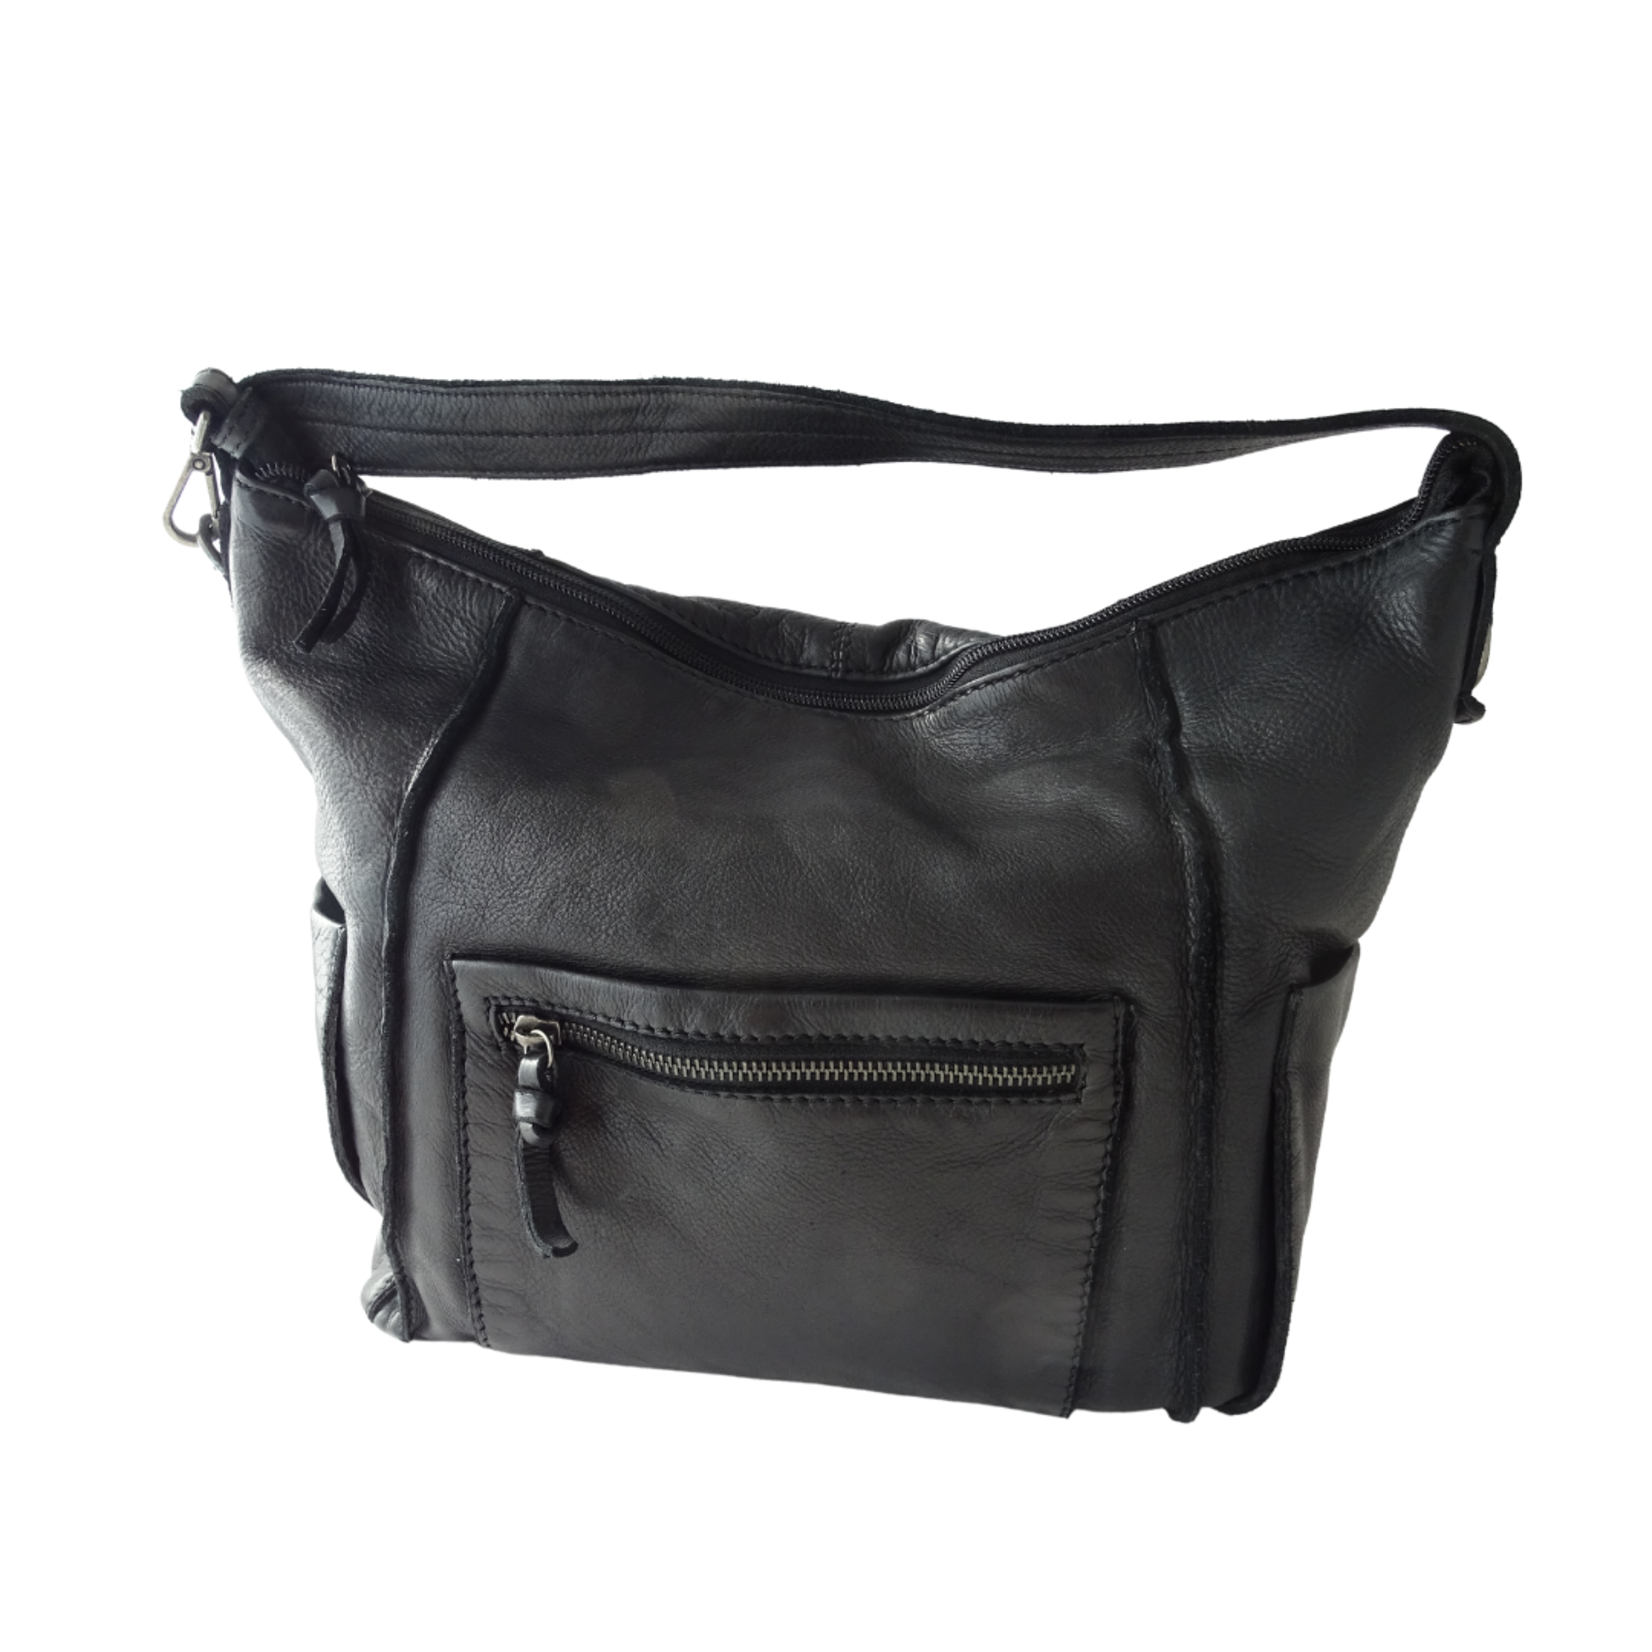 The Trend The Trend 26824 black